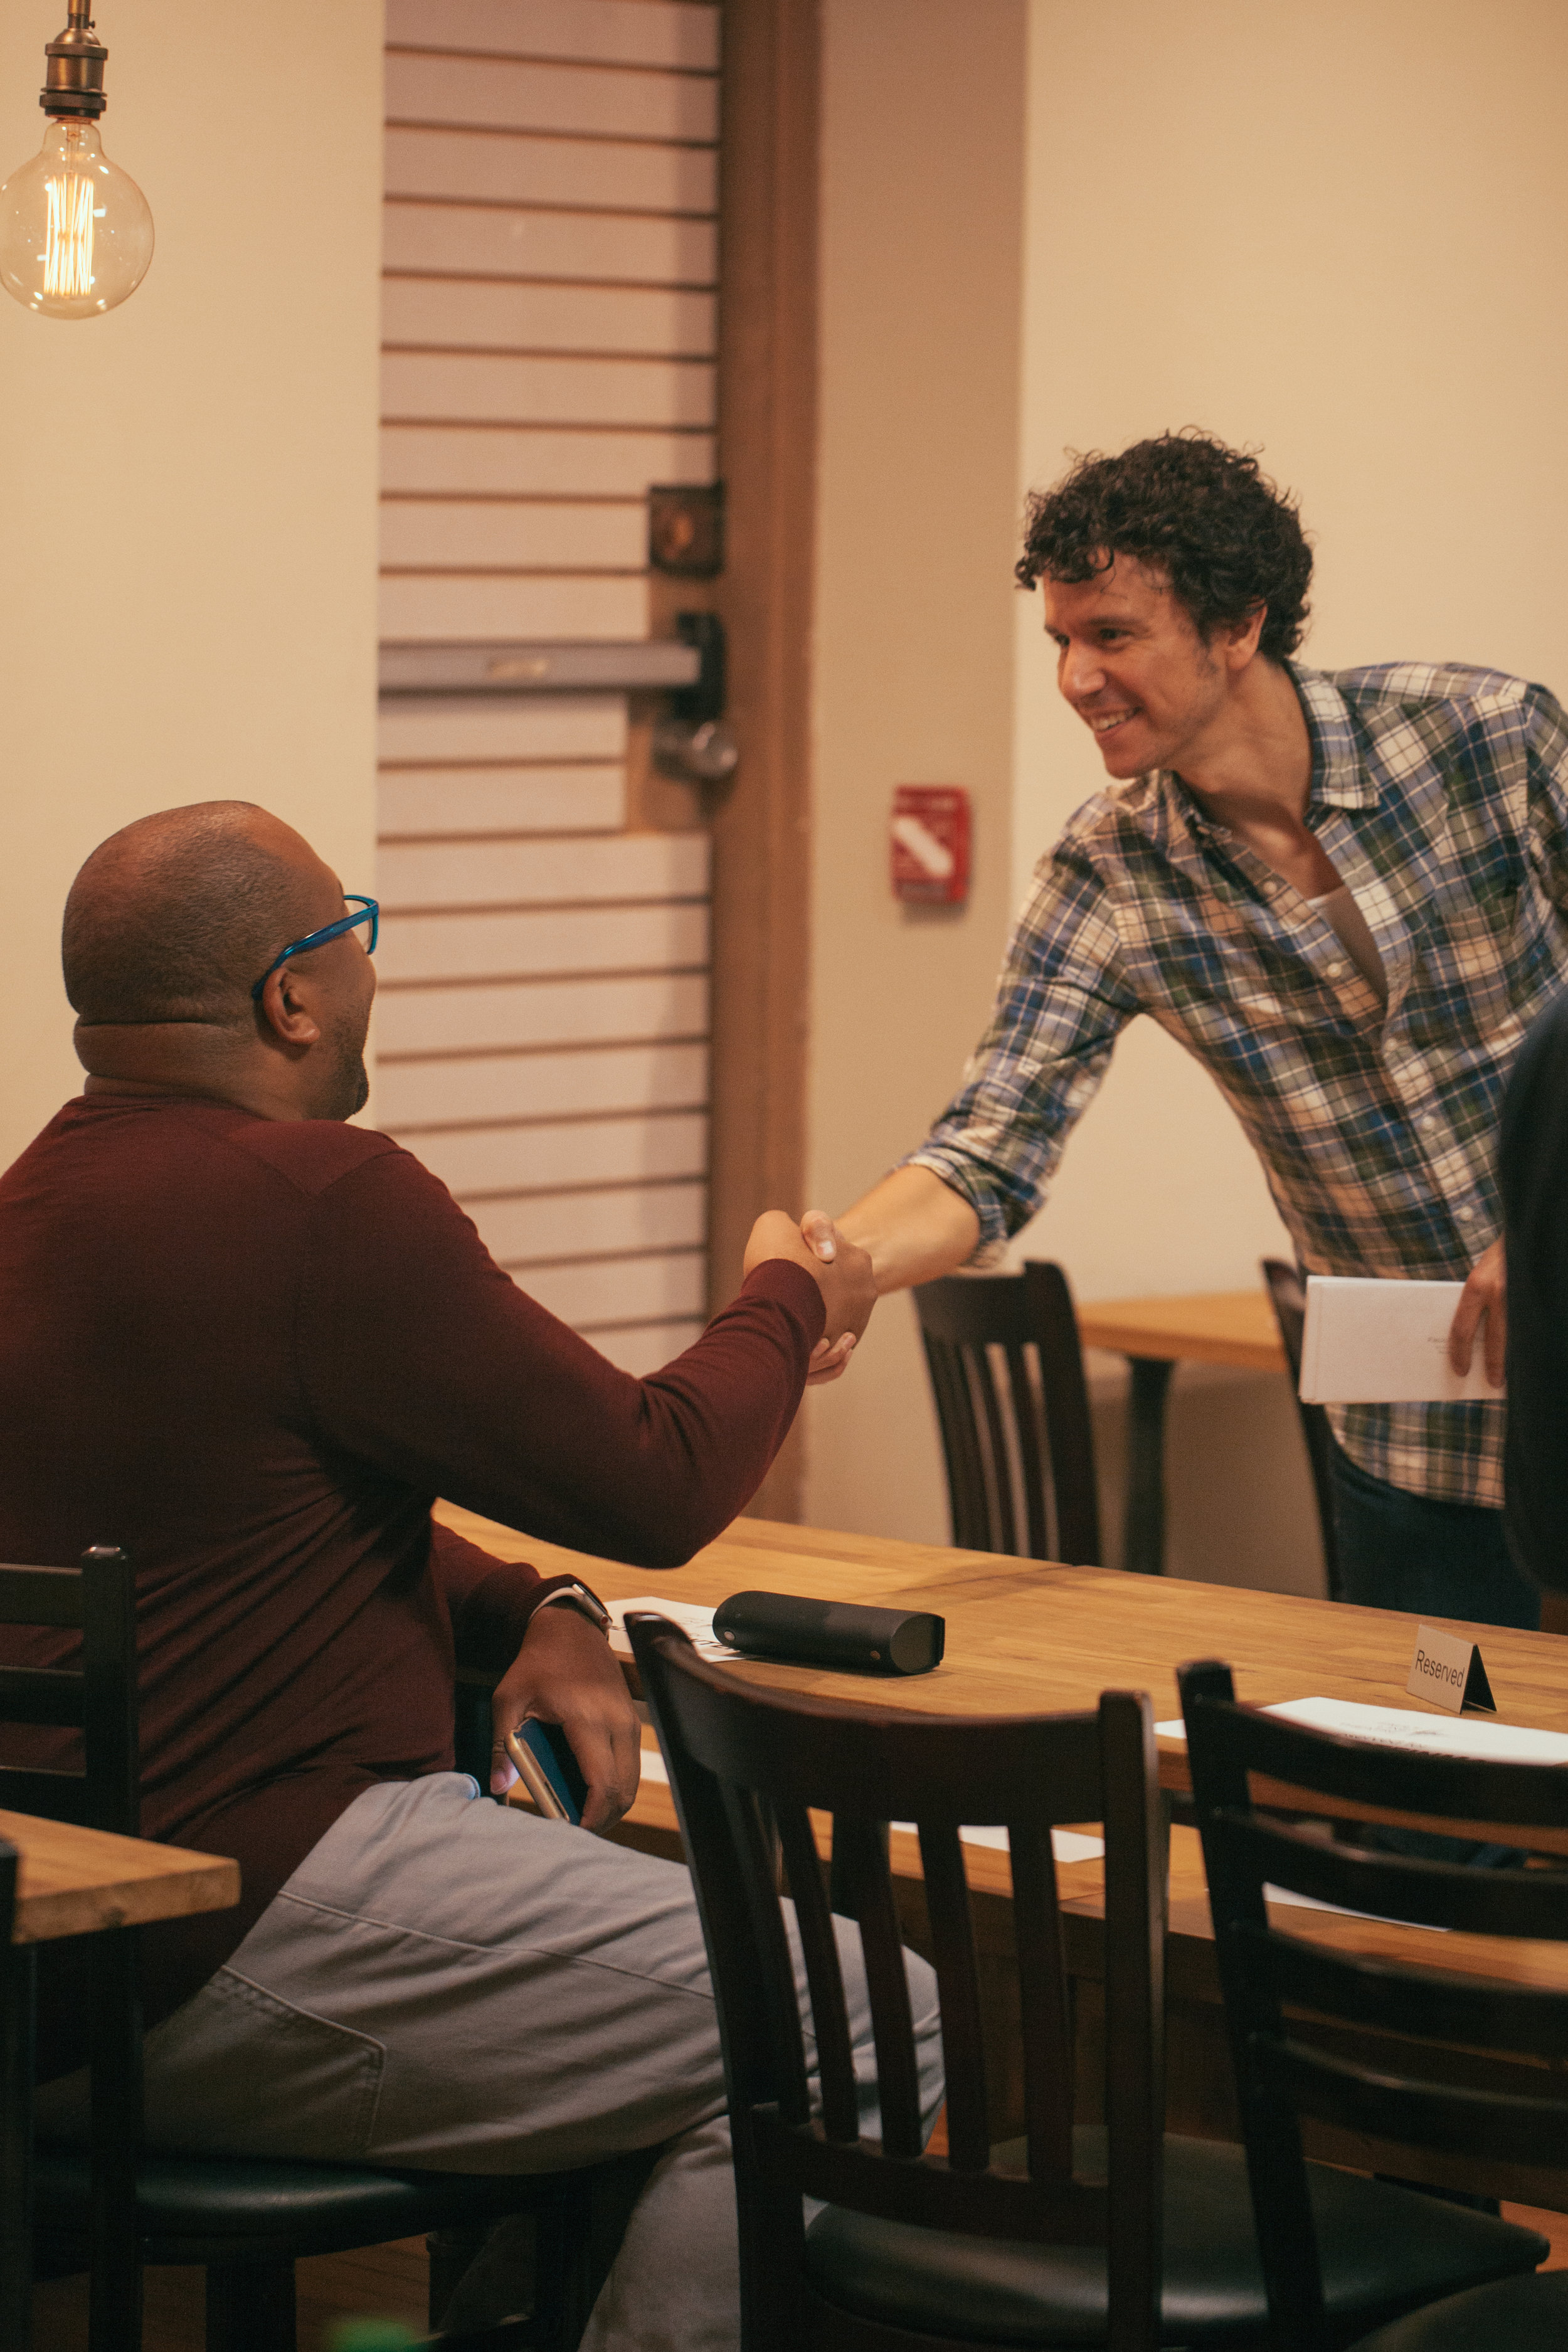 Co-Artistic Director Aaron Rossini greets an audience member. Photo by Katherine Oostman.